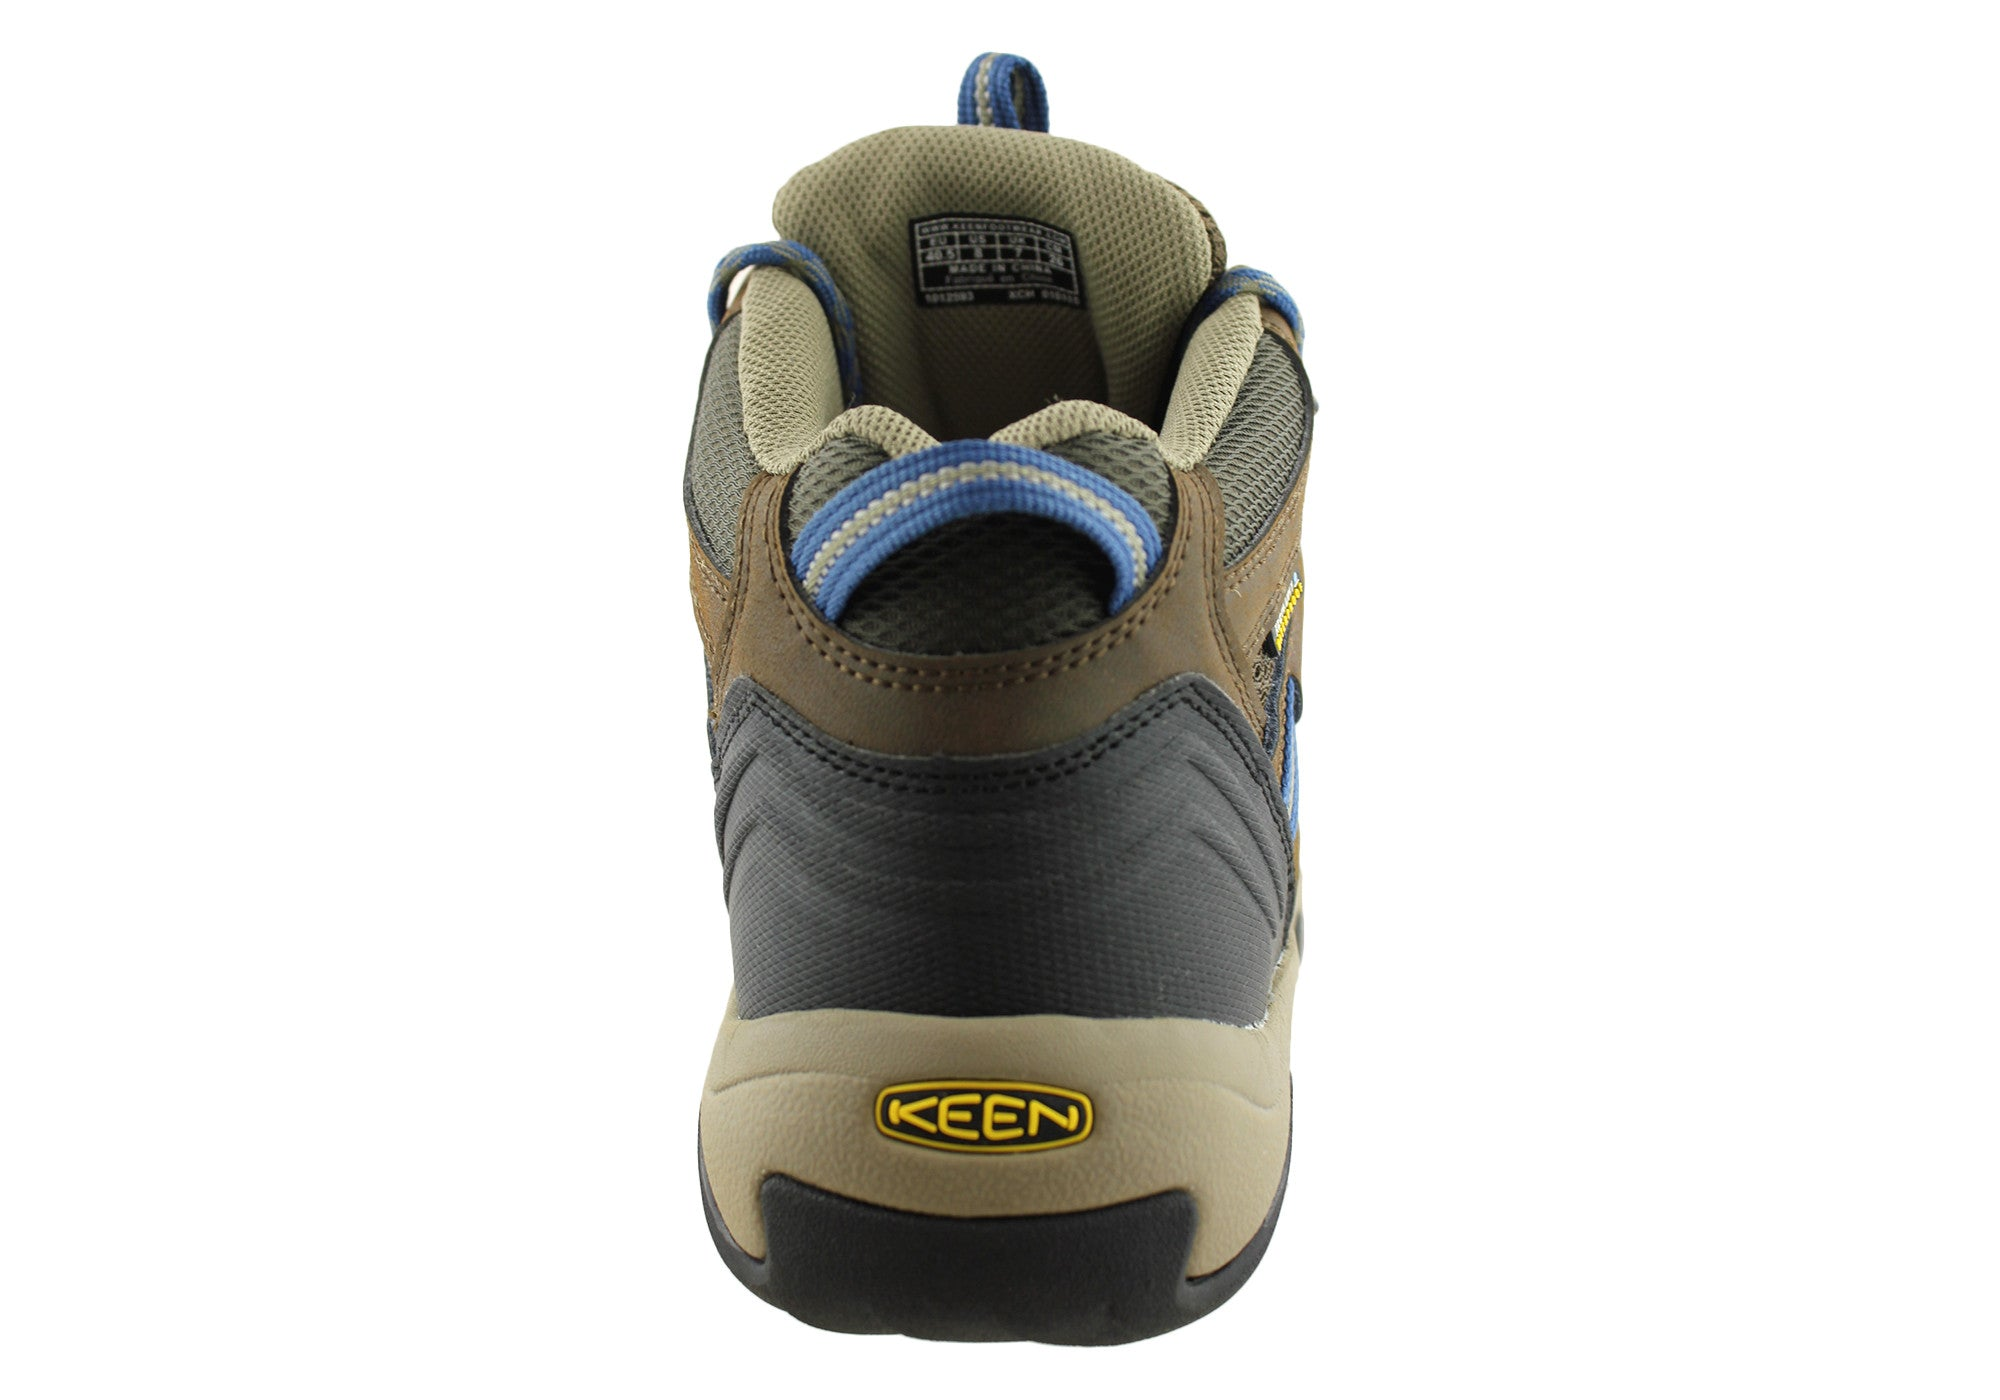 Keen Koven Mid WP Mens Waterproof Wide Fit Boots